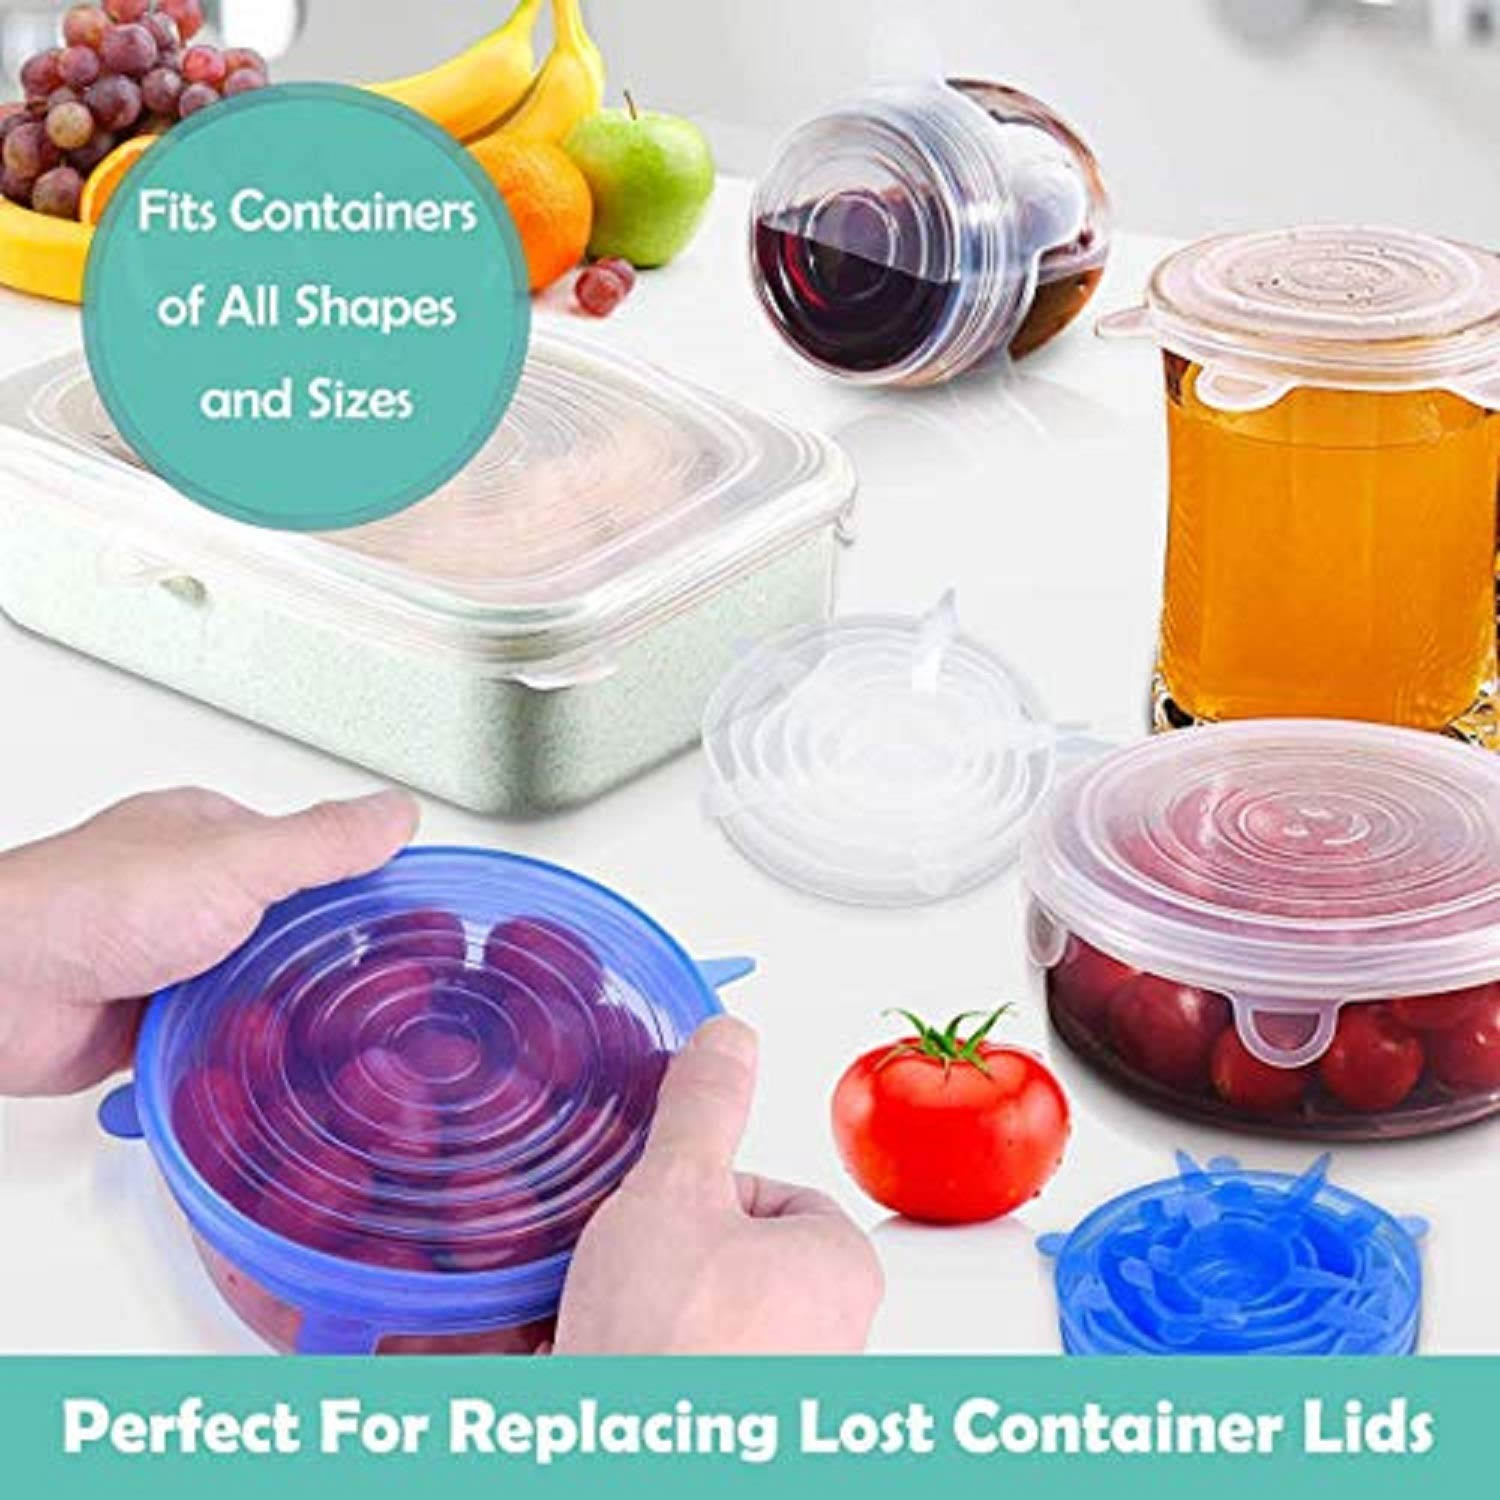 HXPEVER Silicone Stretch Lids,12 Pack Stretch Seal Lids for Food/Bowls/Containers/Jars/Cups,Reusable Silicone Covers for Food & Leftovers -Keep Food Fresh,Eco-Friendly BPA-Free Silicone Fresh Cover